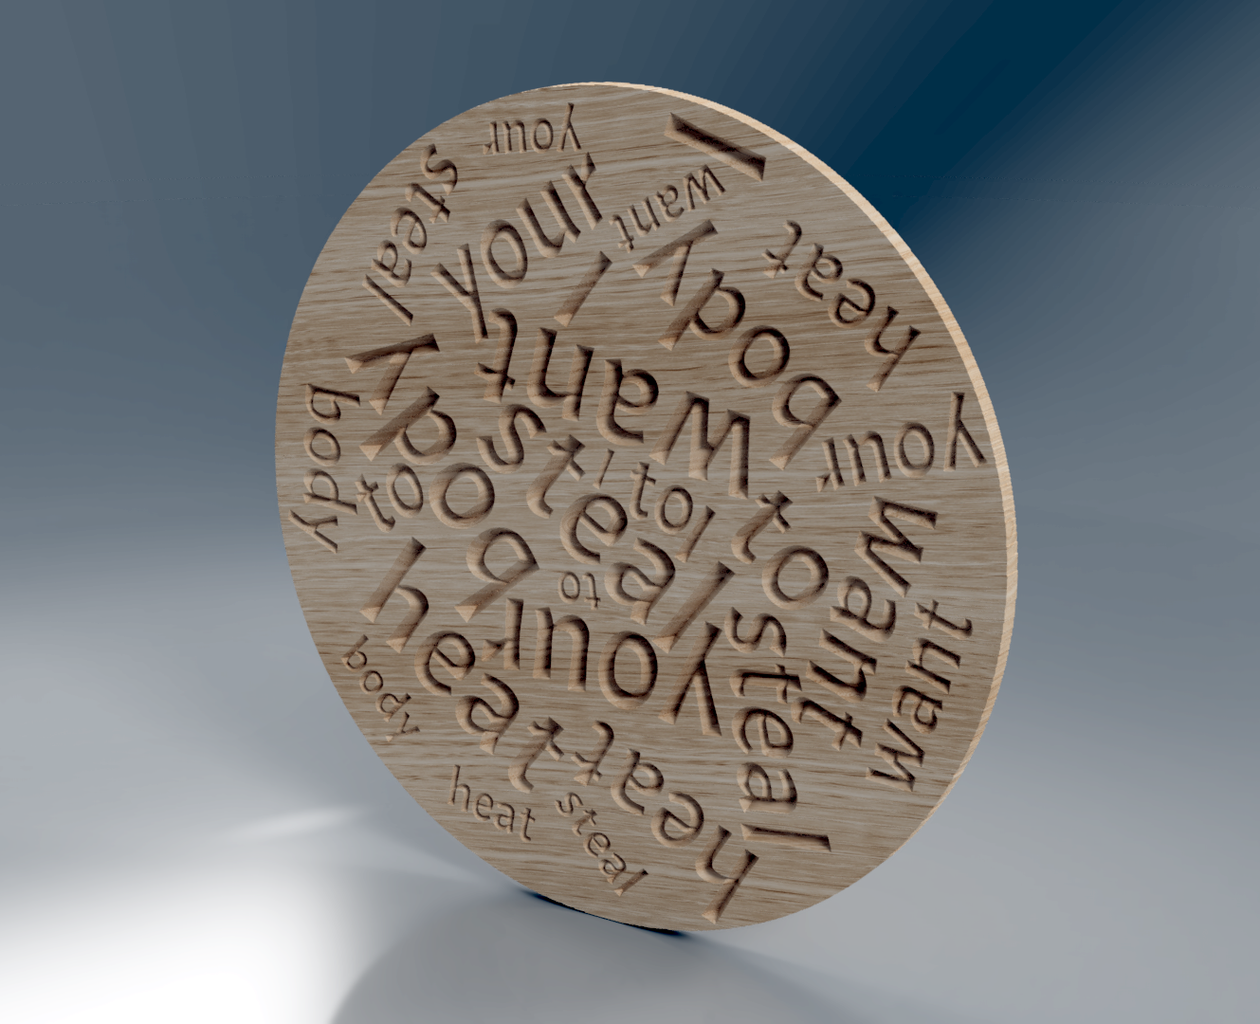 V-carving 'Hidden Messages' on Wood Using Wordclouds.com, Inkscape, Carbide Create and a CNC Machine